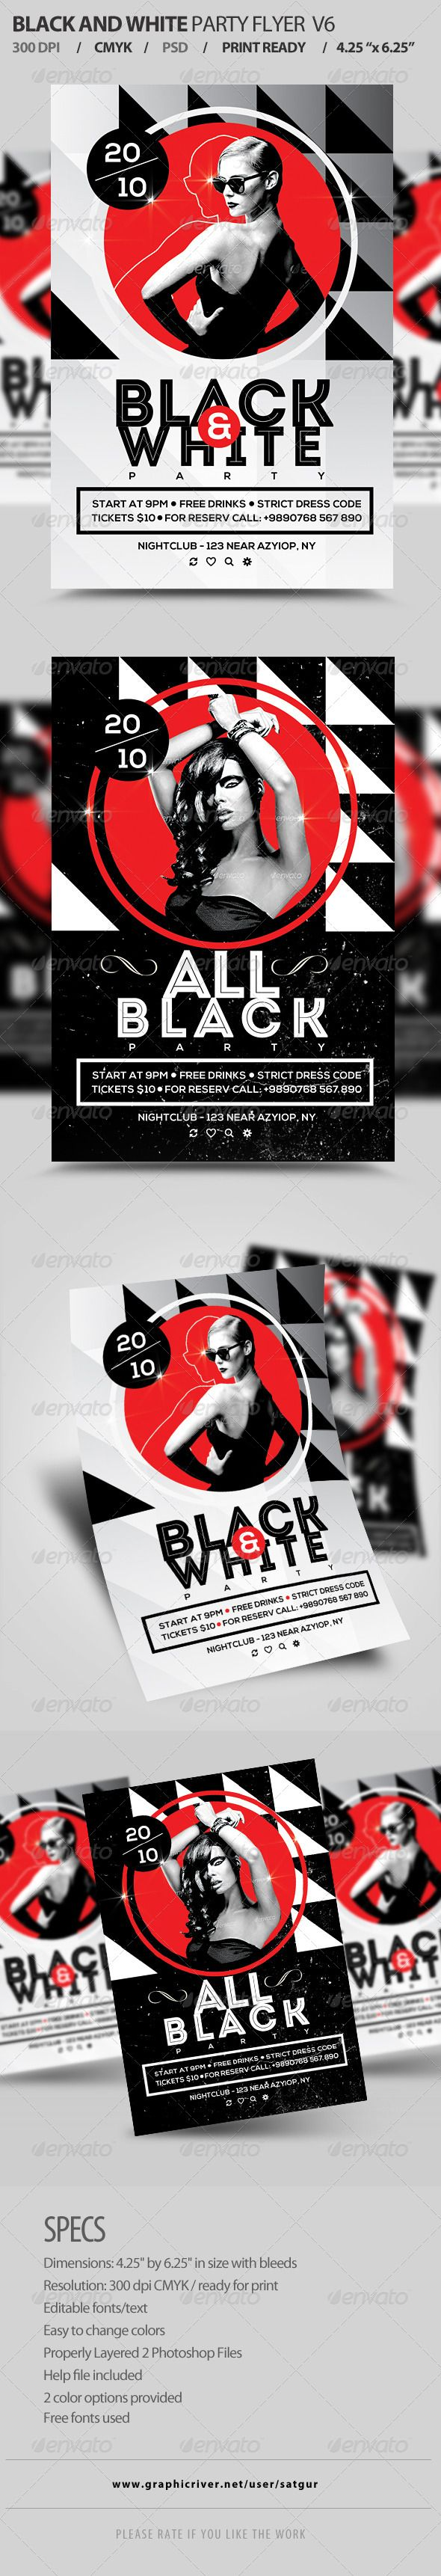 Black And White Party Flyer Template PSD V6   Party flyer, Flyer ...